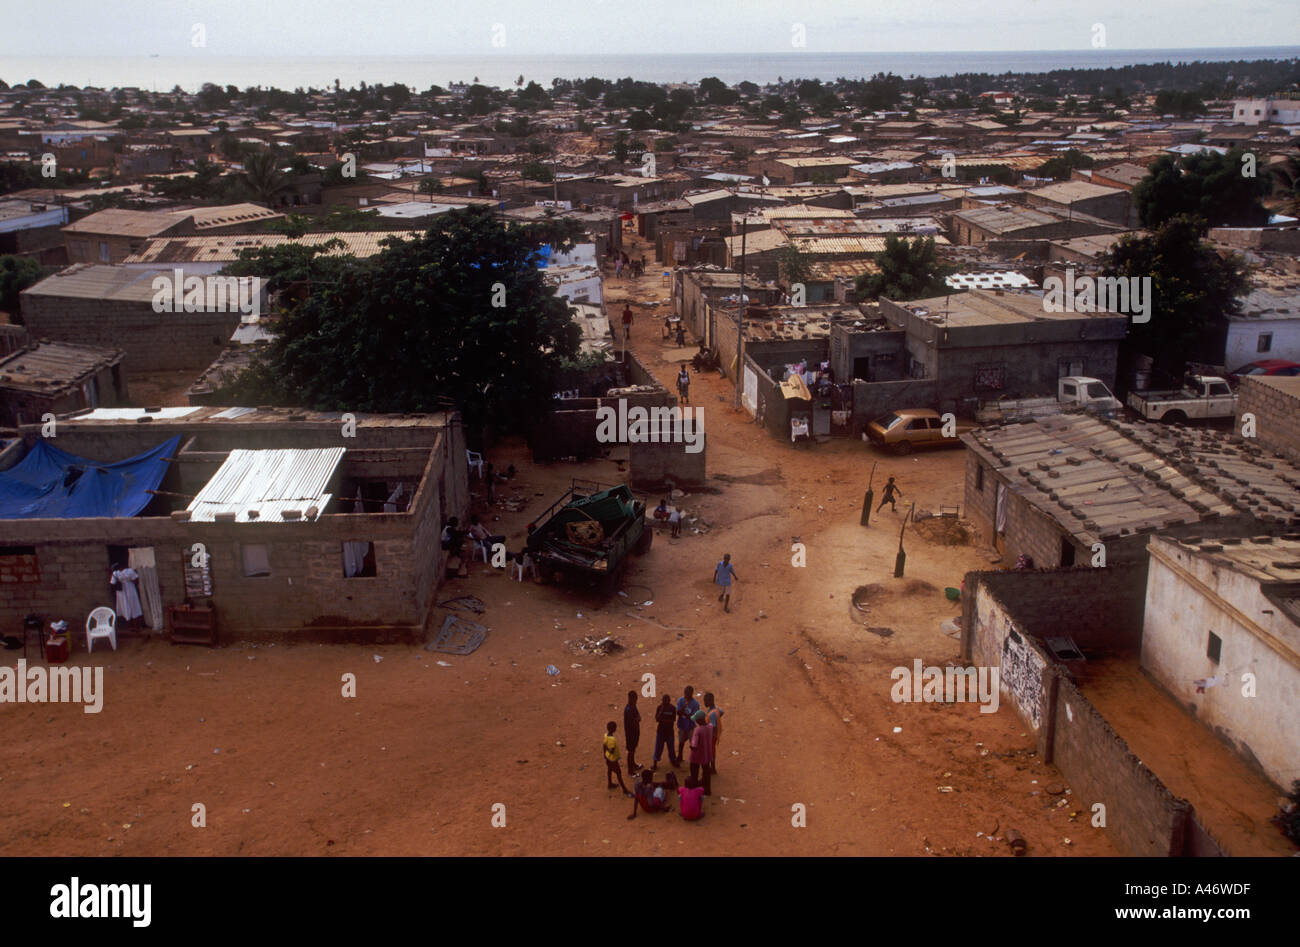 The view over a shanty town in Luanda the capital of Angola - Stock Image